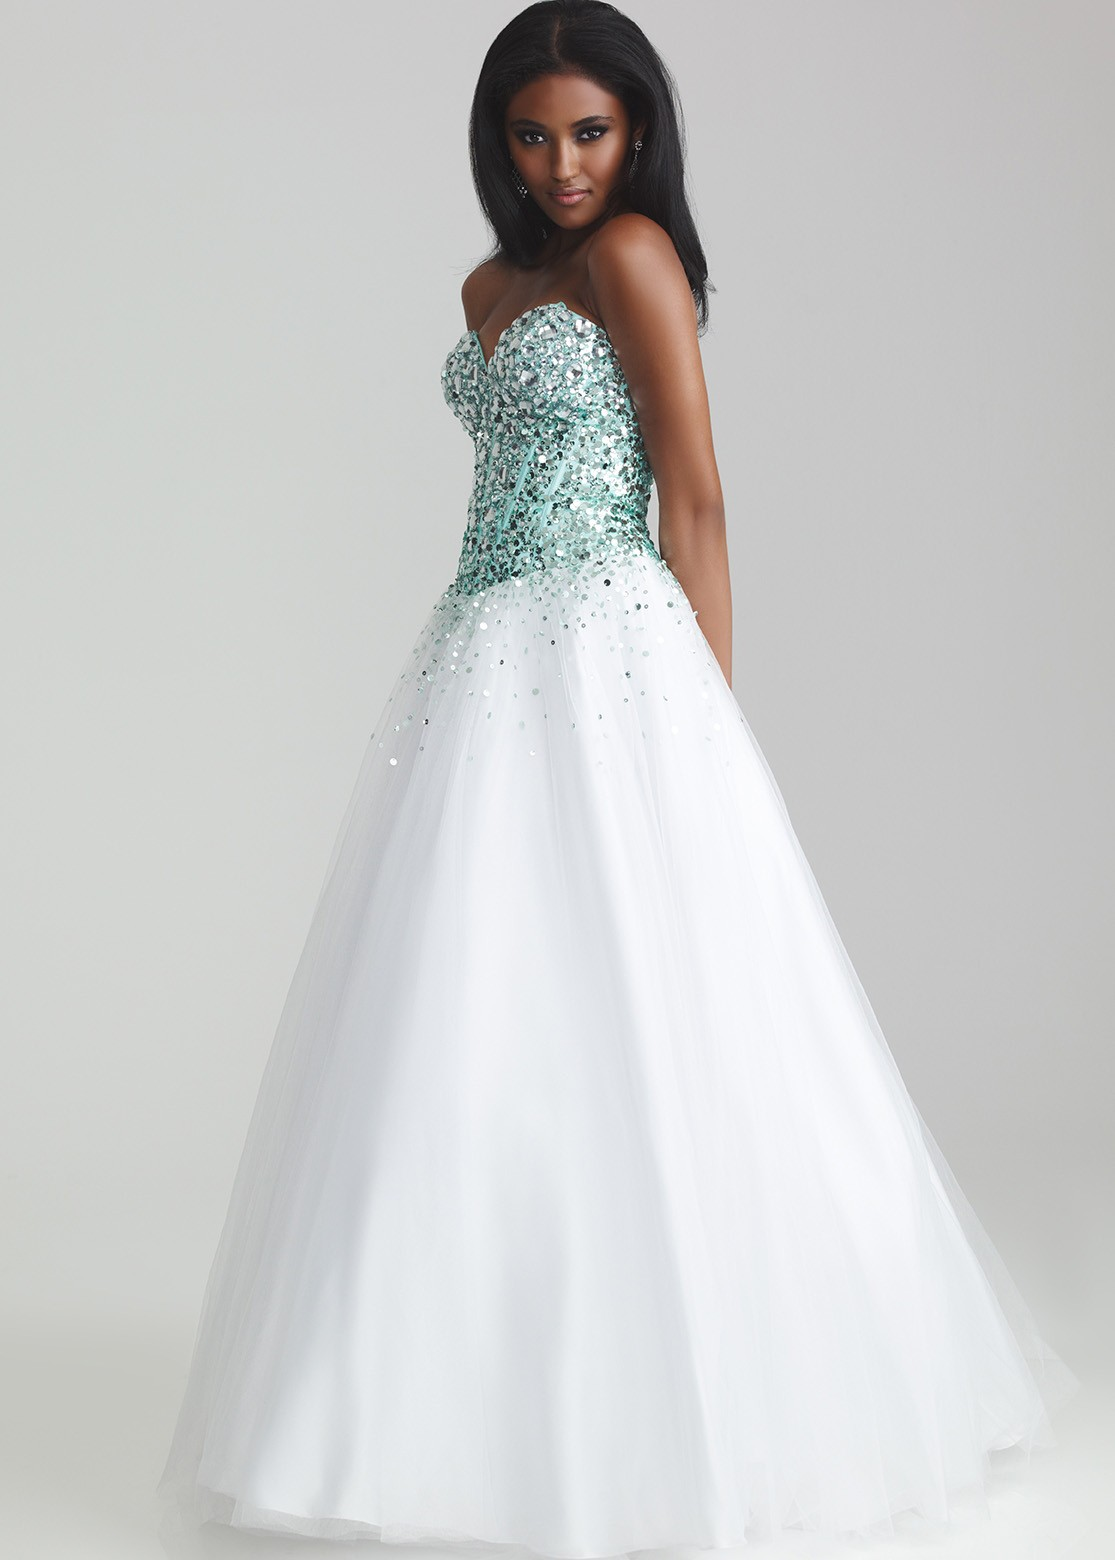 Moves 6700 - Aqua, White Strapless Ball Gown Prom Dresses ...